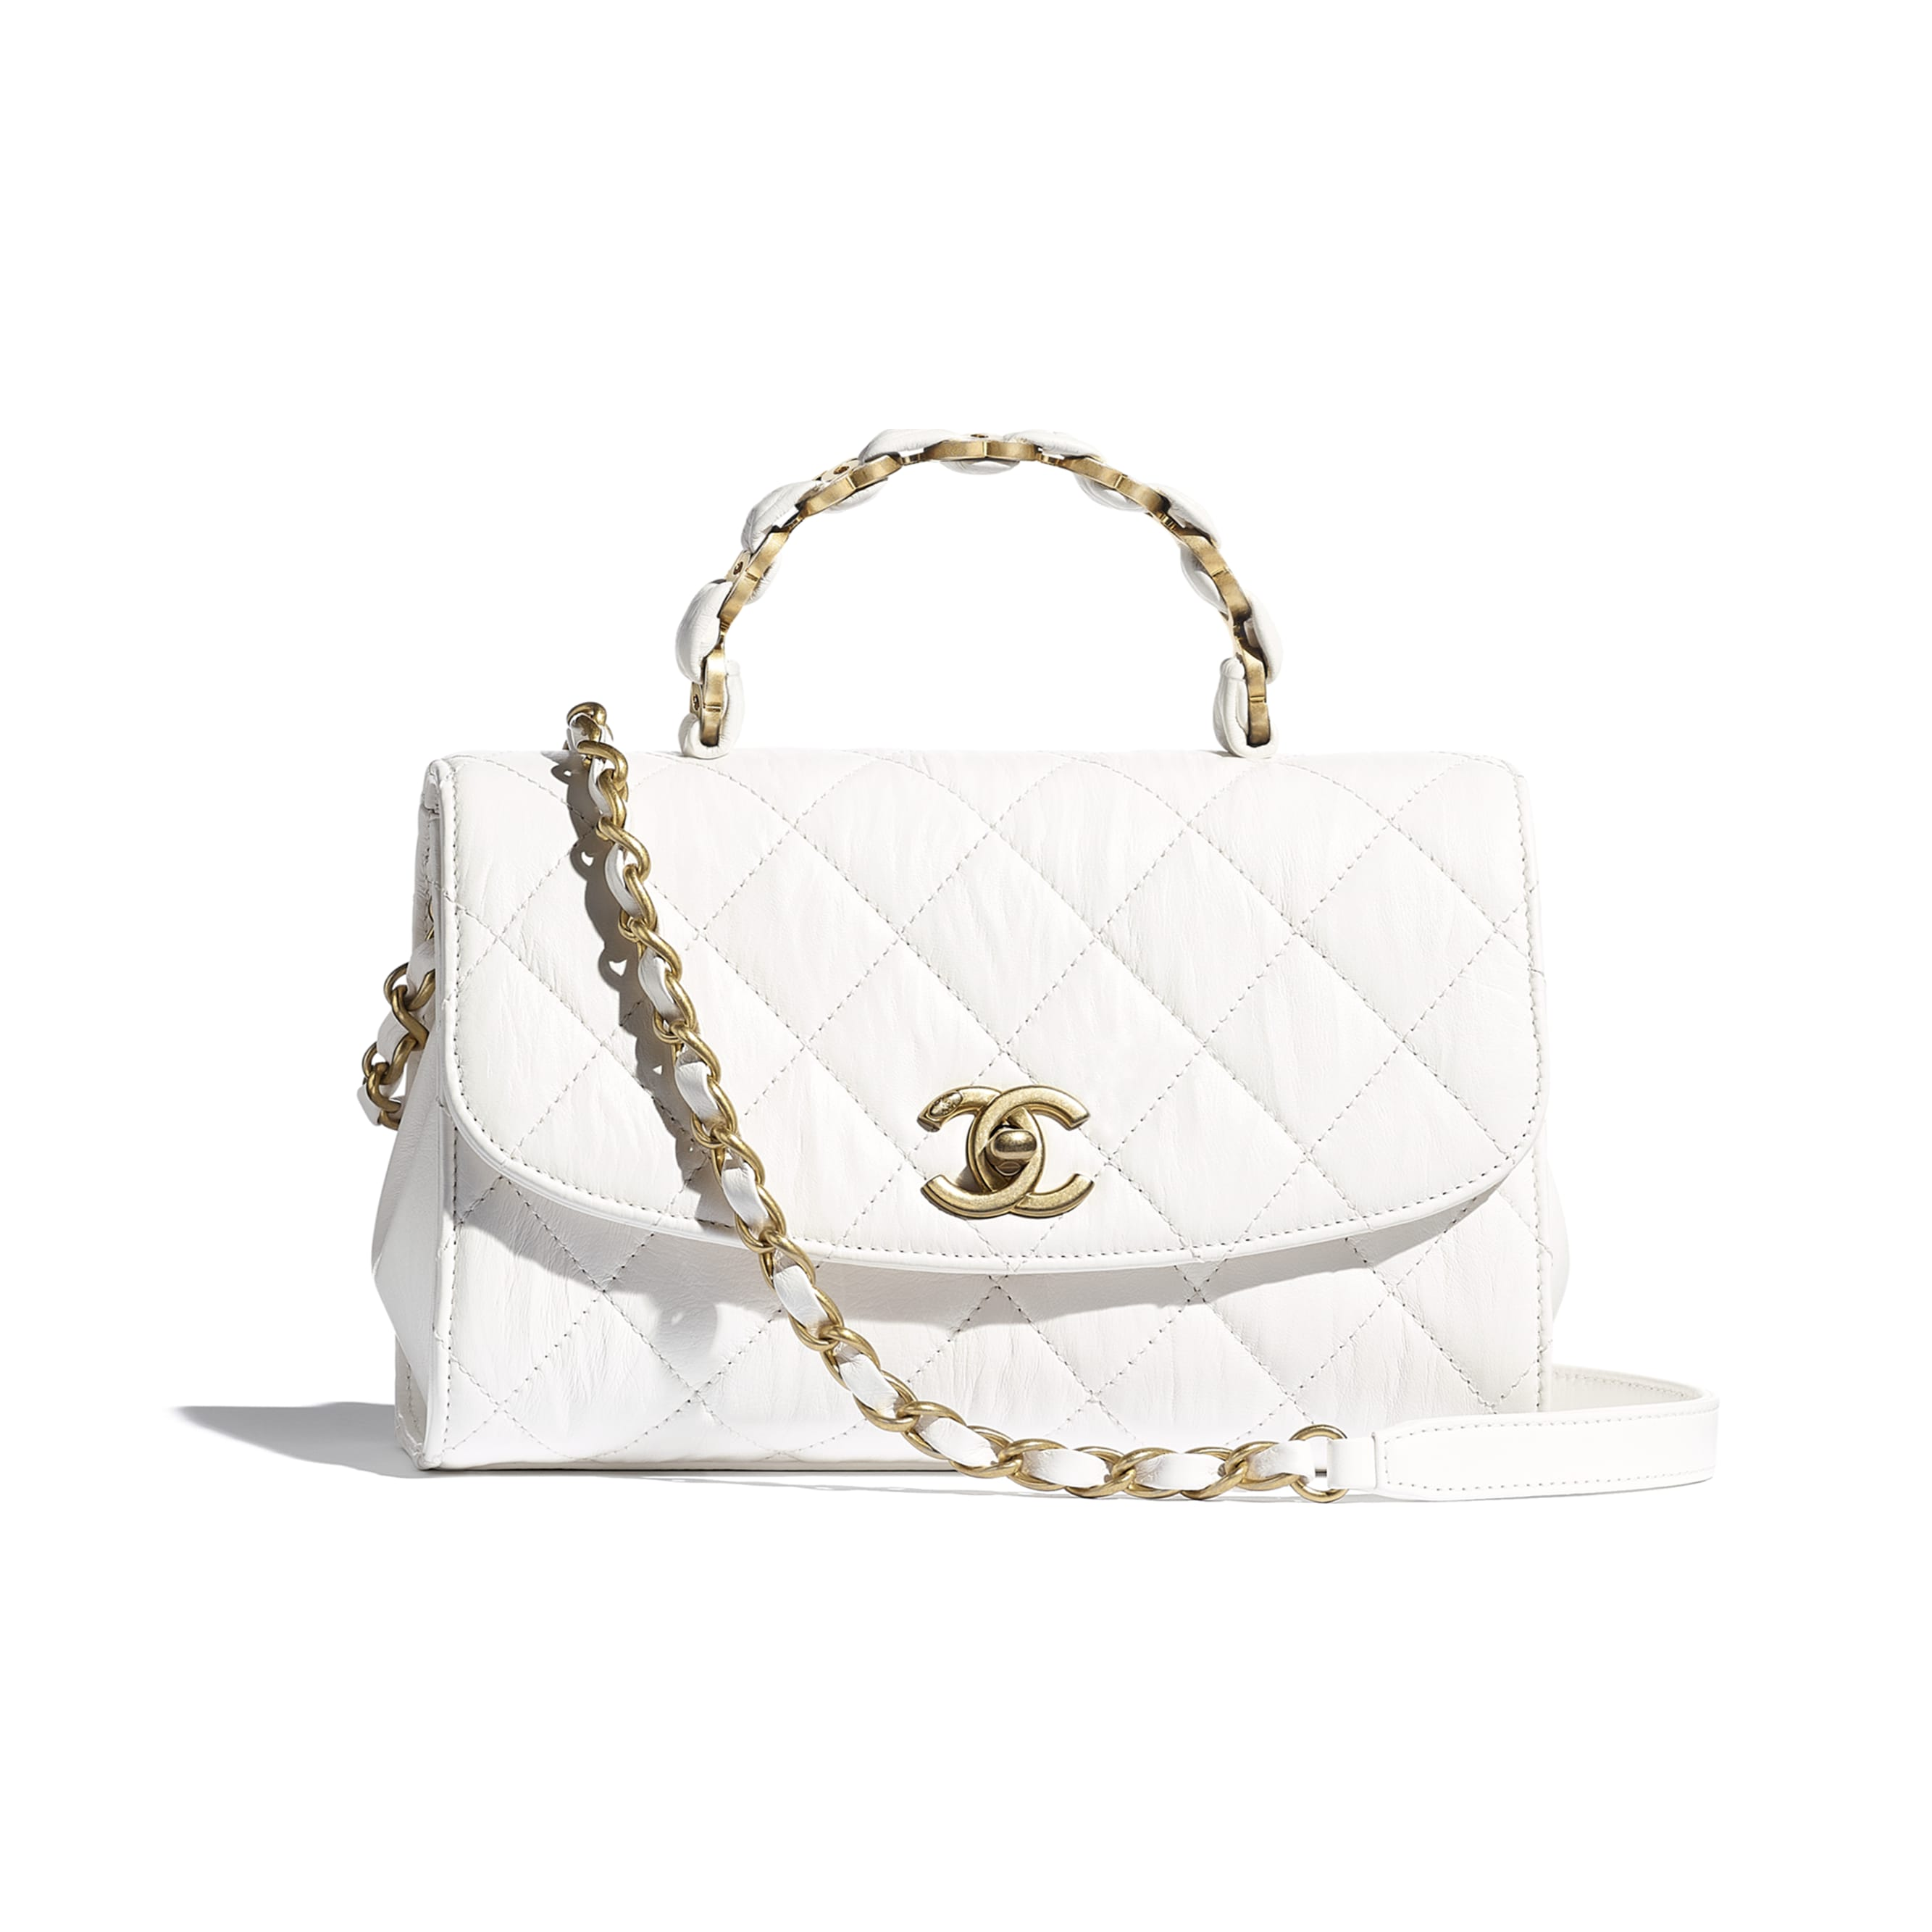 Small Flap Bag With Top Handle - White - Crumpled Lambskin & Gold-Tone Metal - CHANEL - Default view - see standard sized version